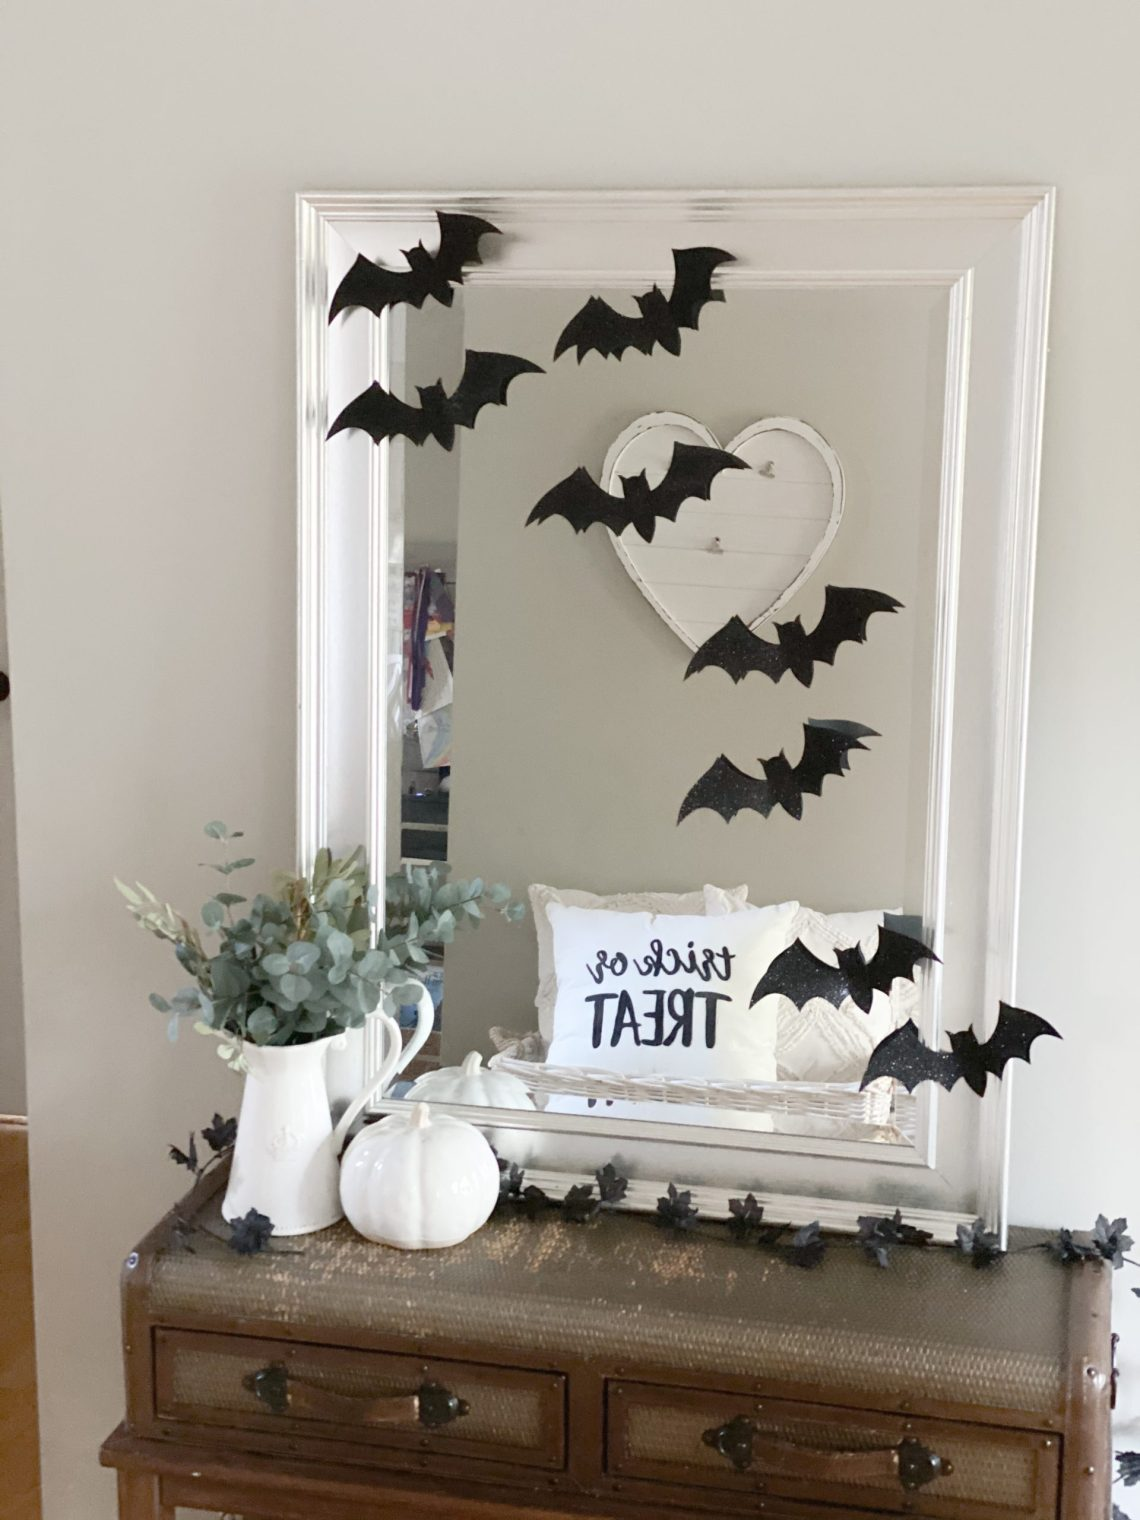 Party City Halloween Decorations - Halloween Decor Ideas via frostedevents - Halloween mantel